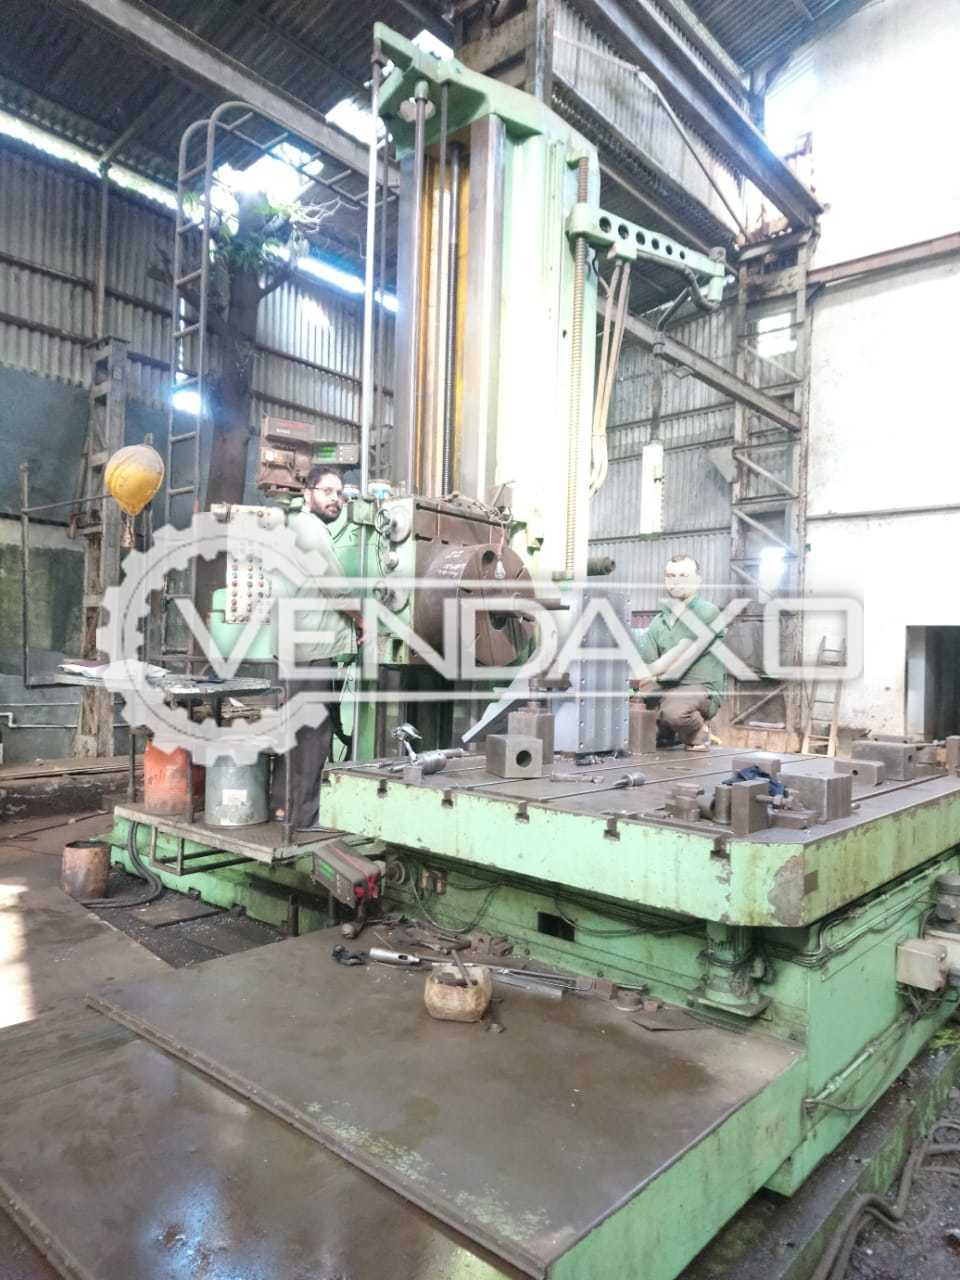 San Rocco Make Table Type Boring Machine - Table Size : 2400 x 1800 mm